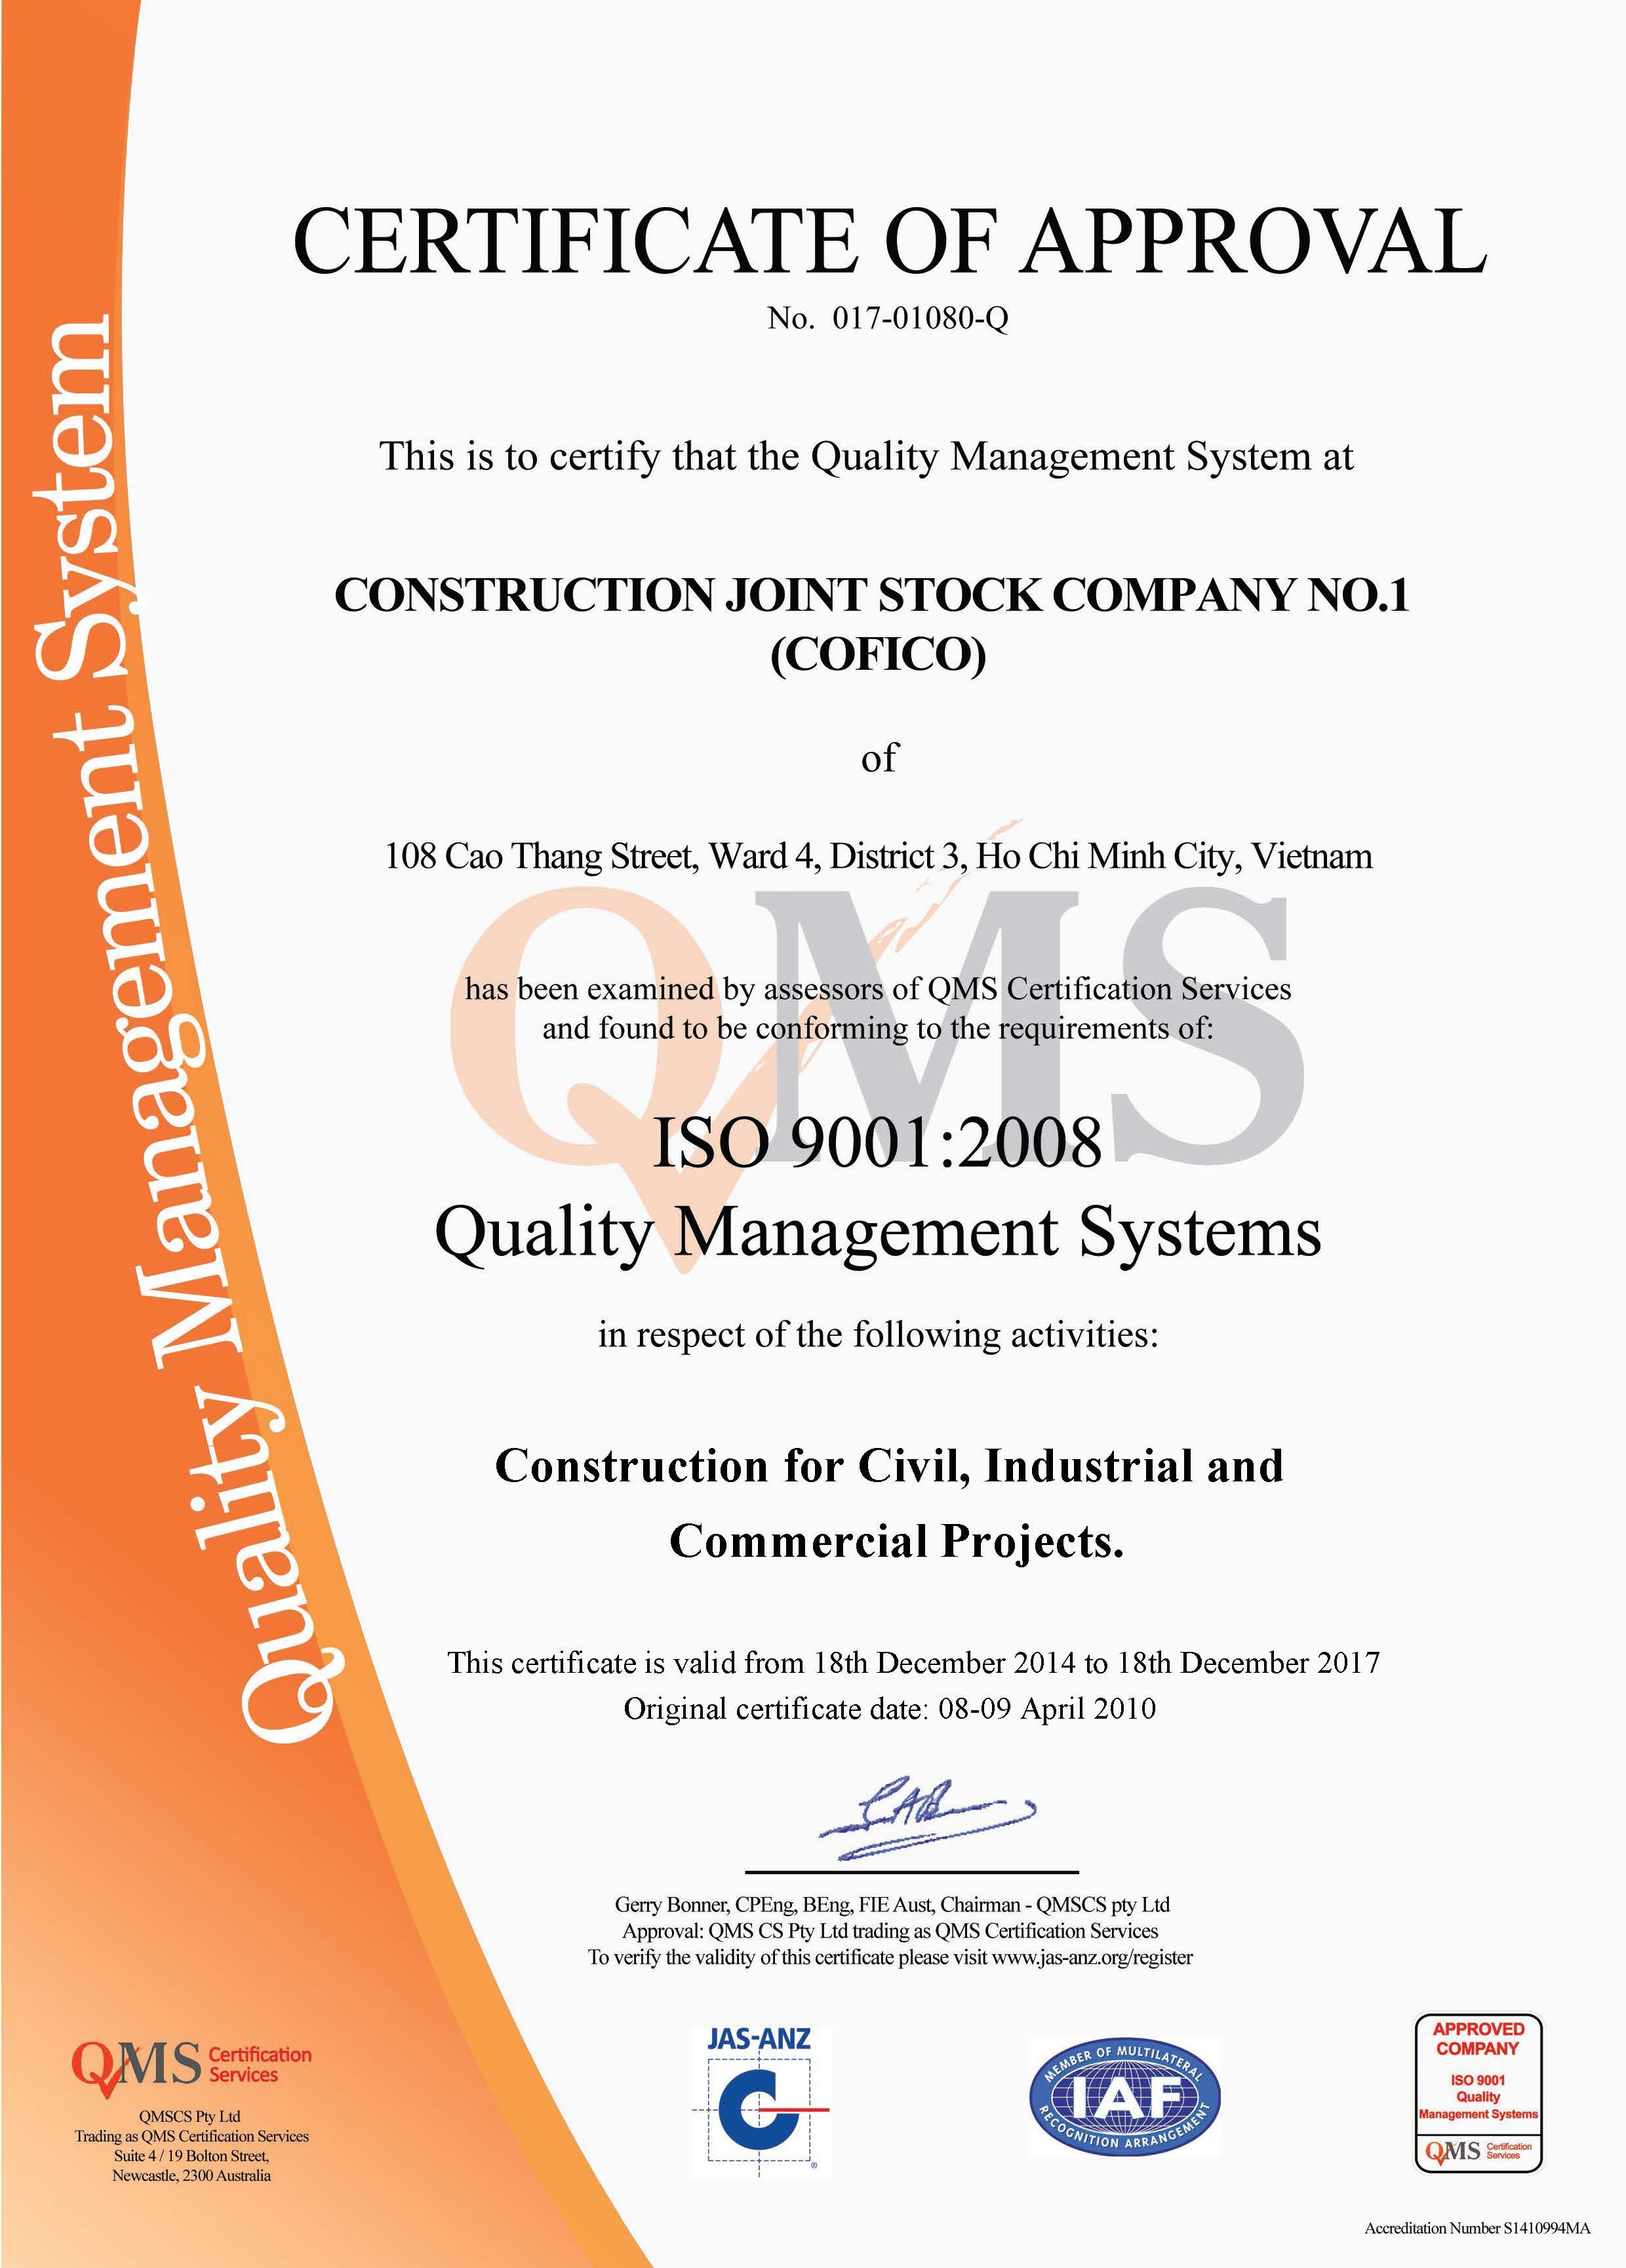 iso9001certificate2014